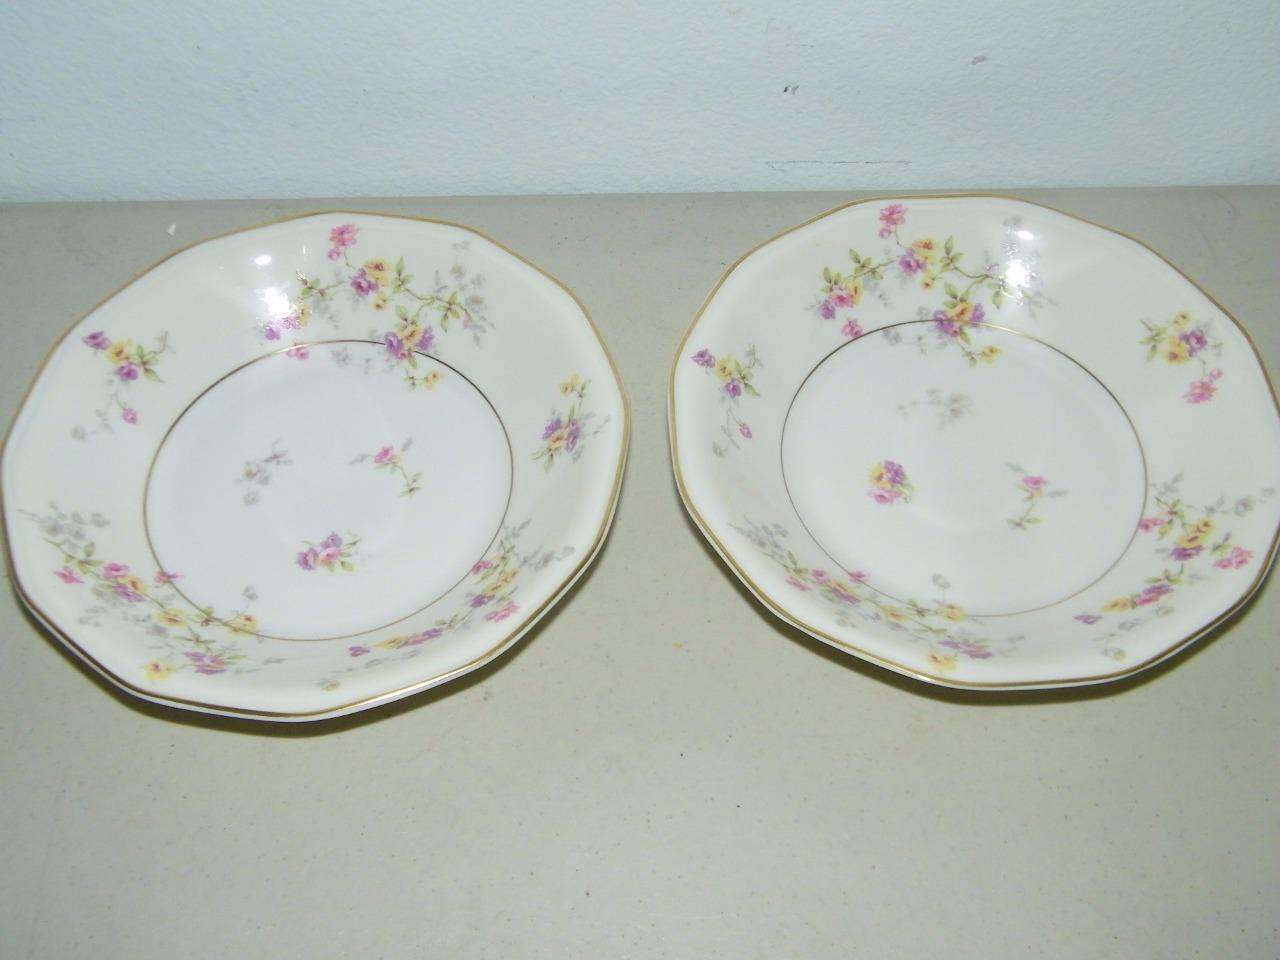 Primary image for 2 Vintage Theodore Haviland Rosamonde Soup Bowl 7 1/2 Inches 13476